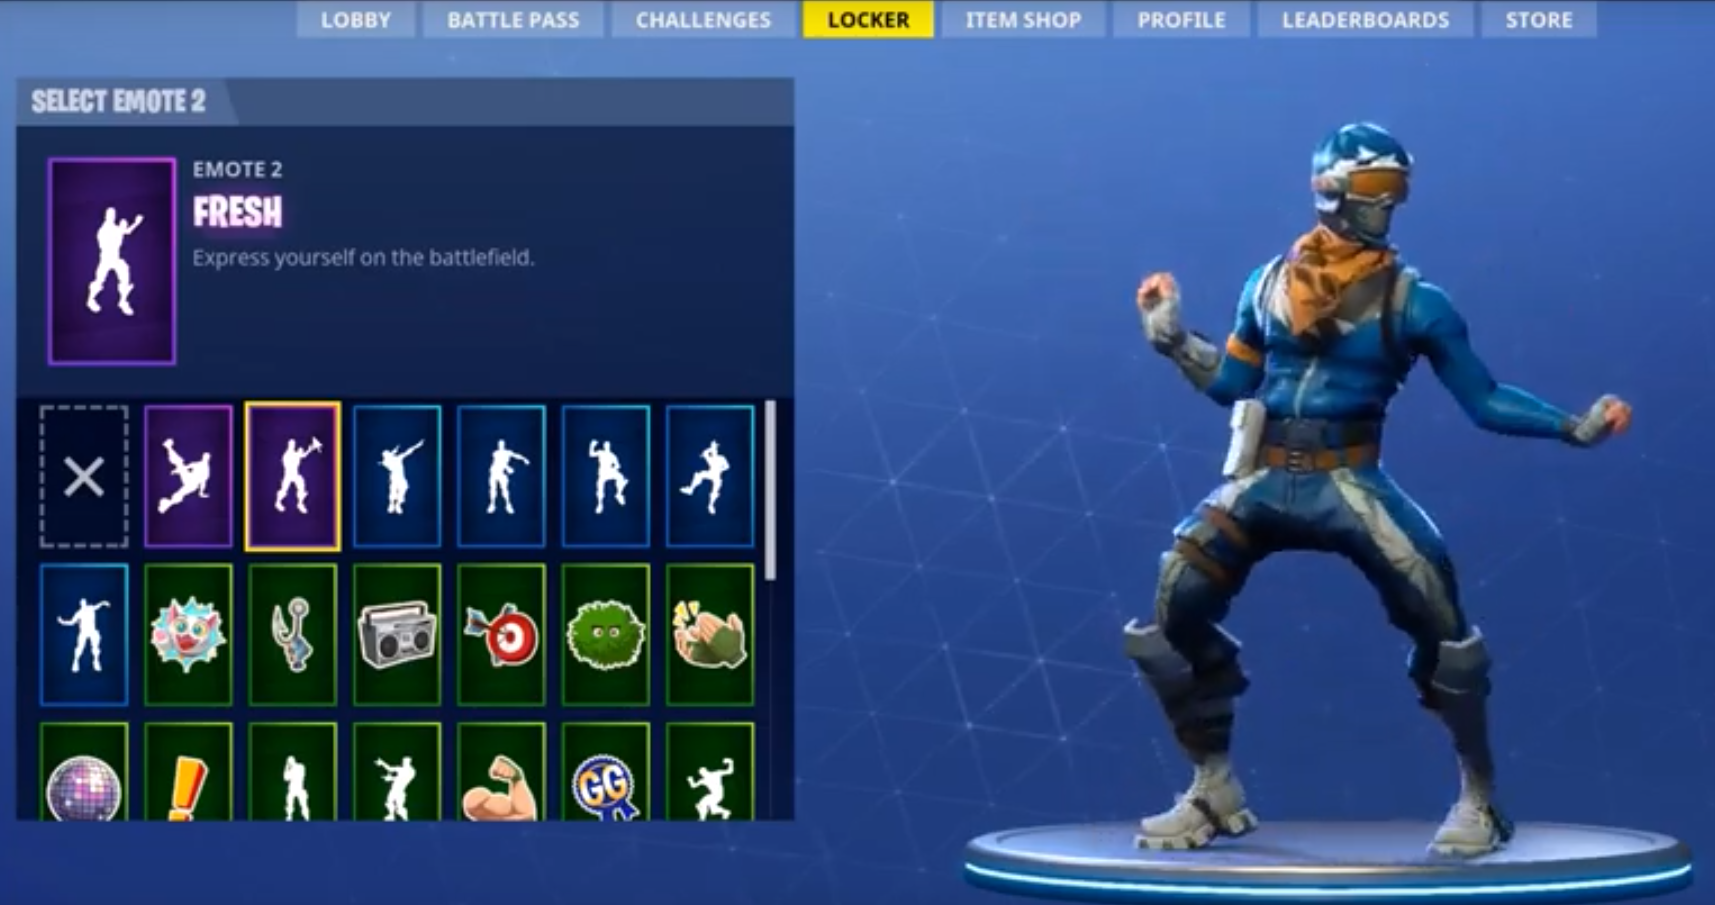 how fortnite s dance moves sparked new lawsuits against epic games techcrunch - fortnite tornado kid